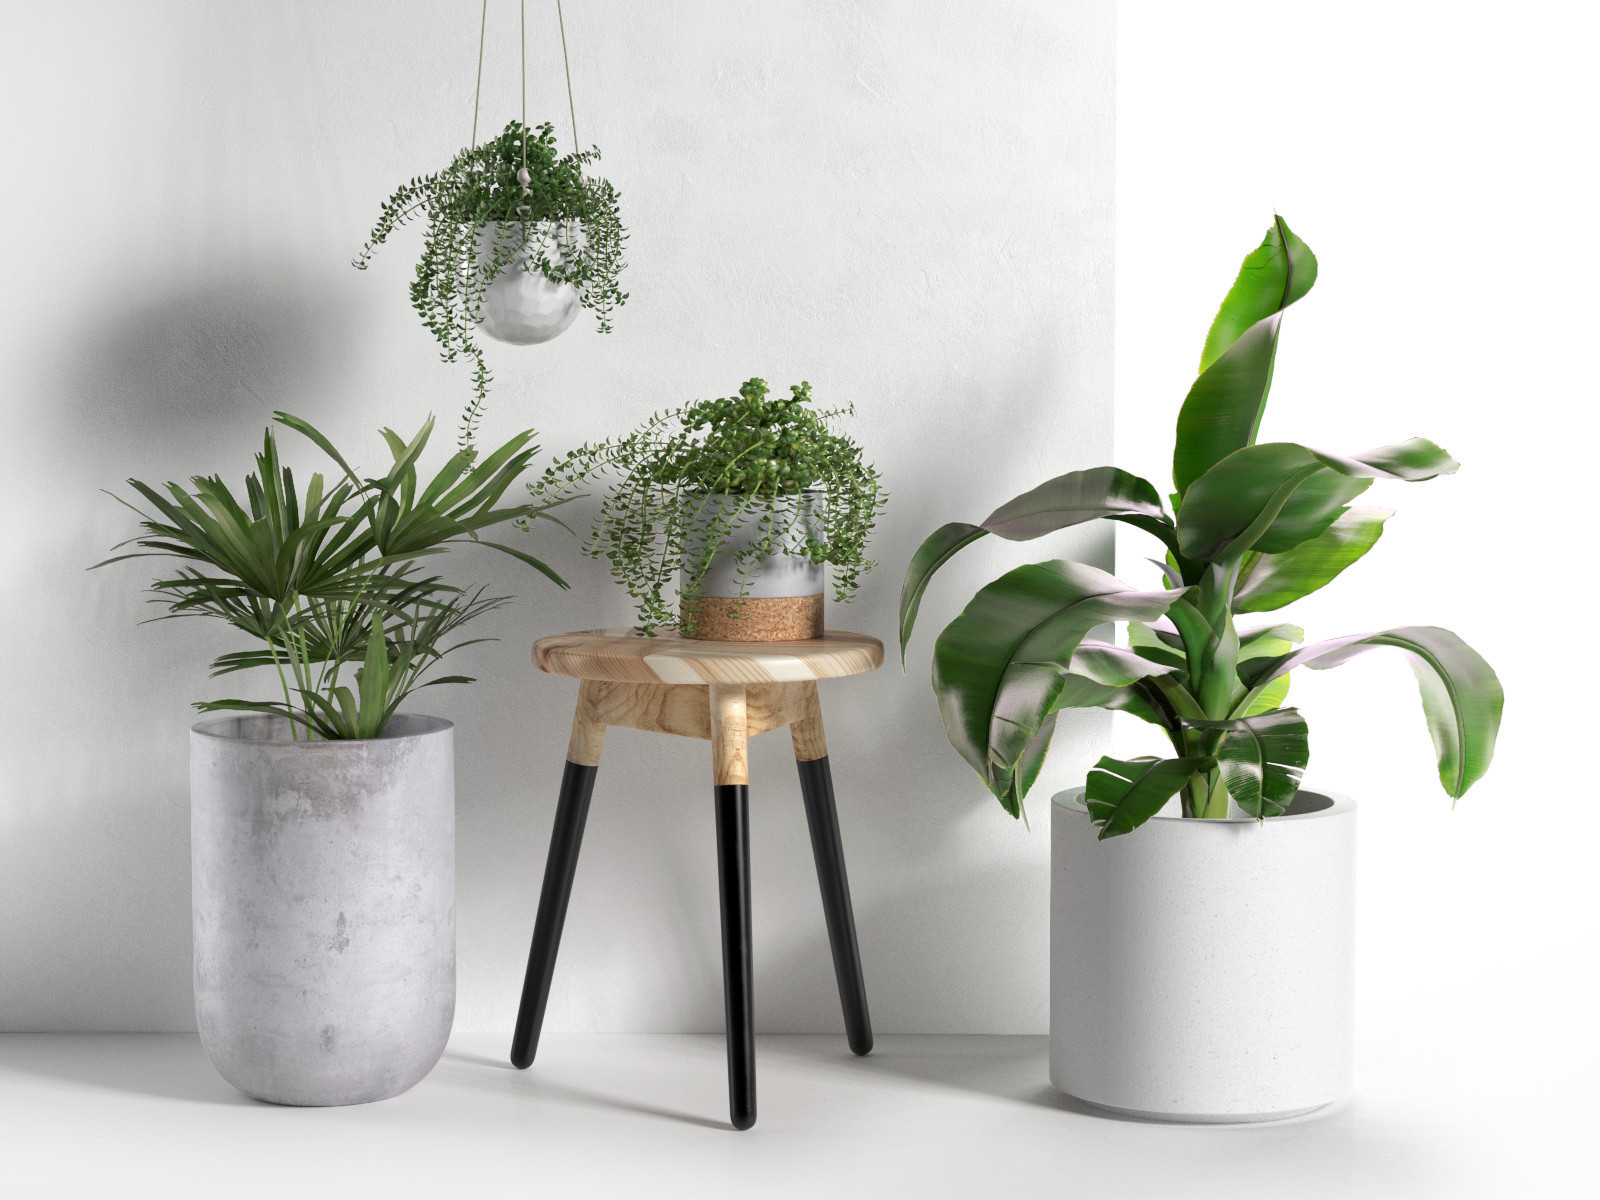 Stool and pots with plants for Plant de pot exterieur